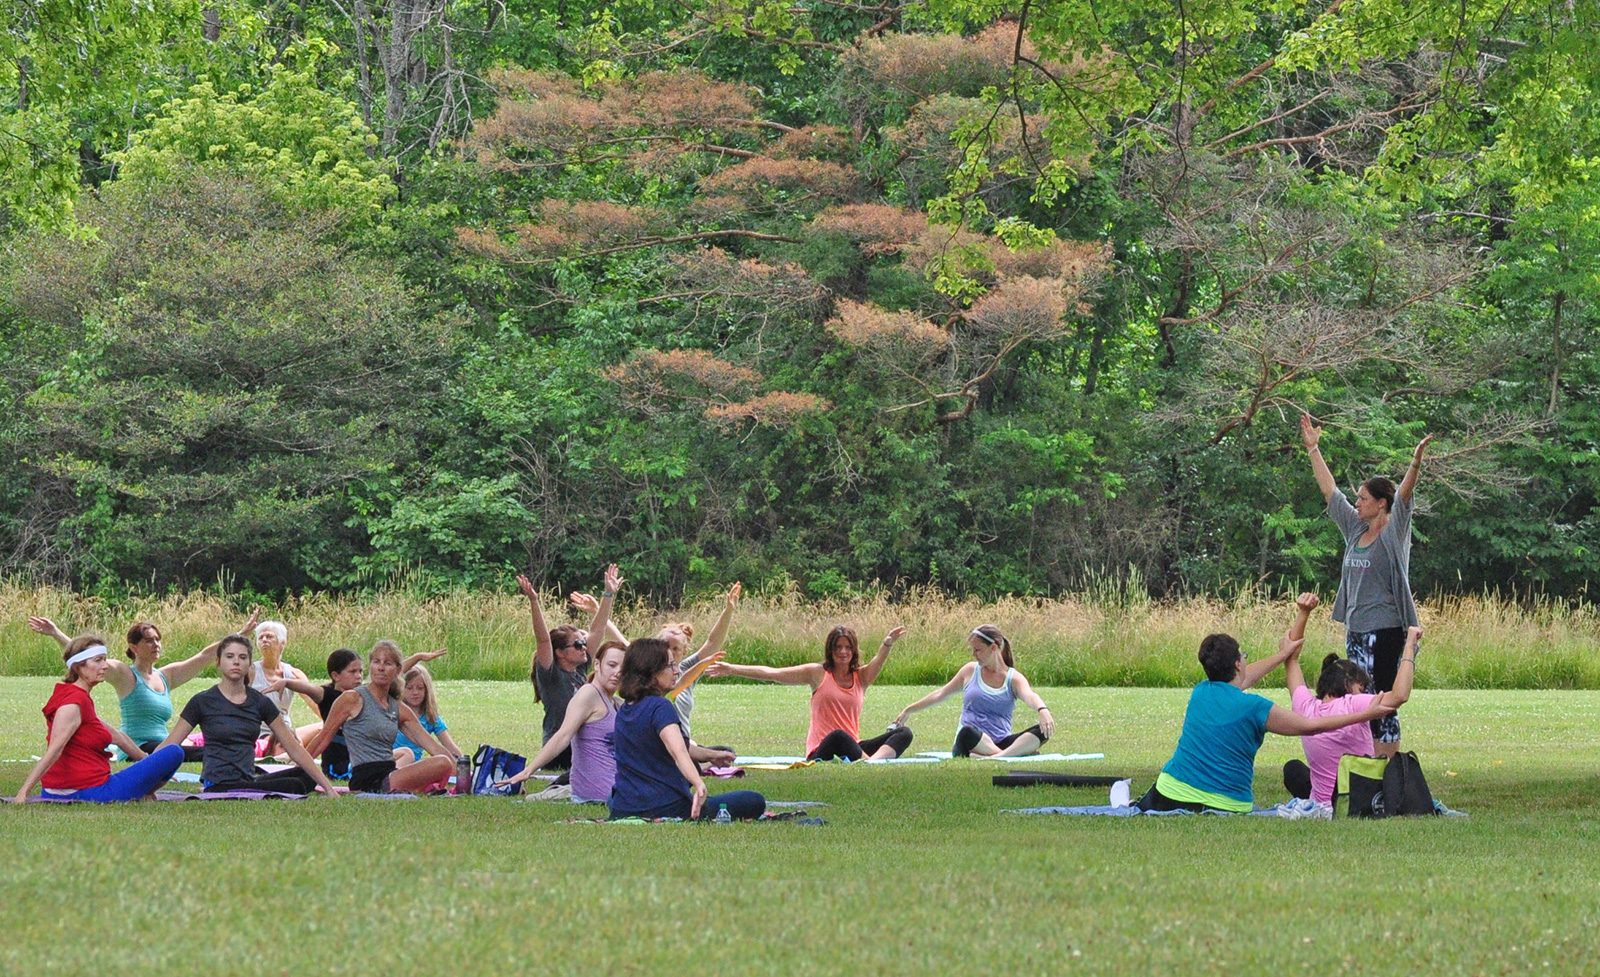 Yoga in the Park, in the Cedar Ridge area at Battelle Darby Creek.